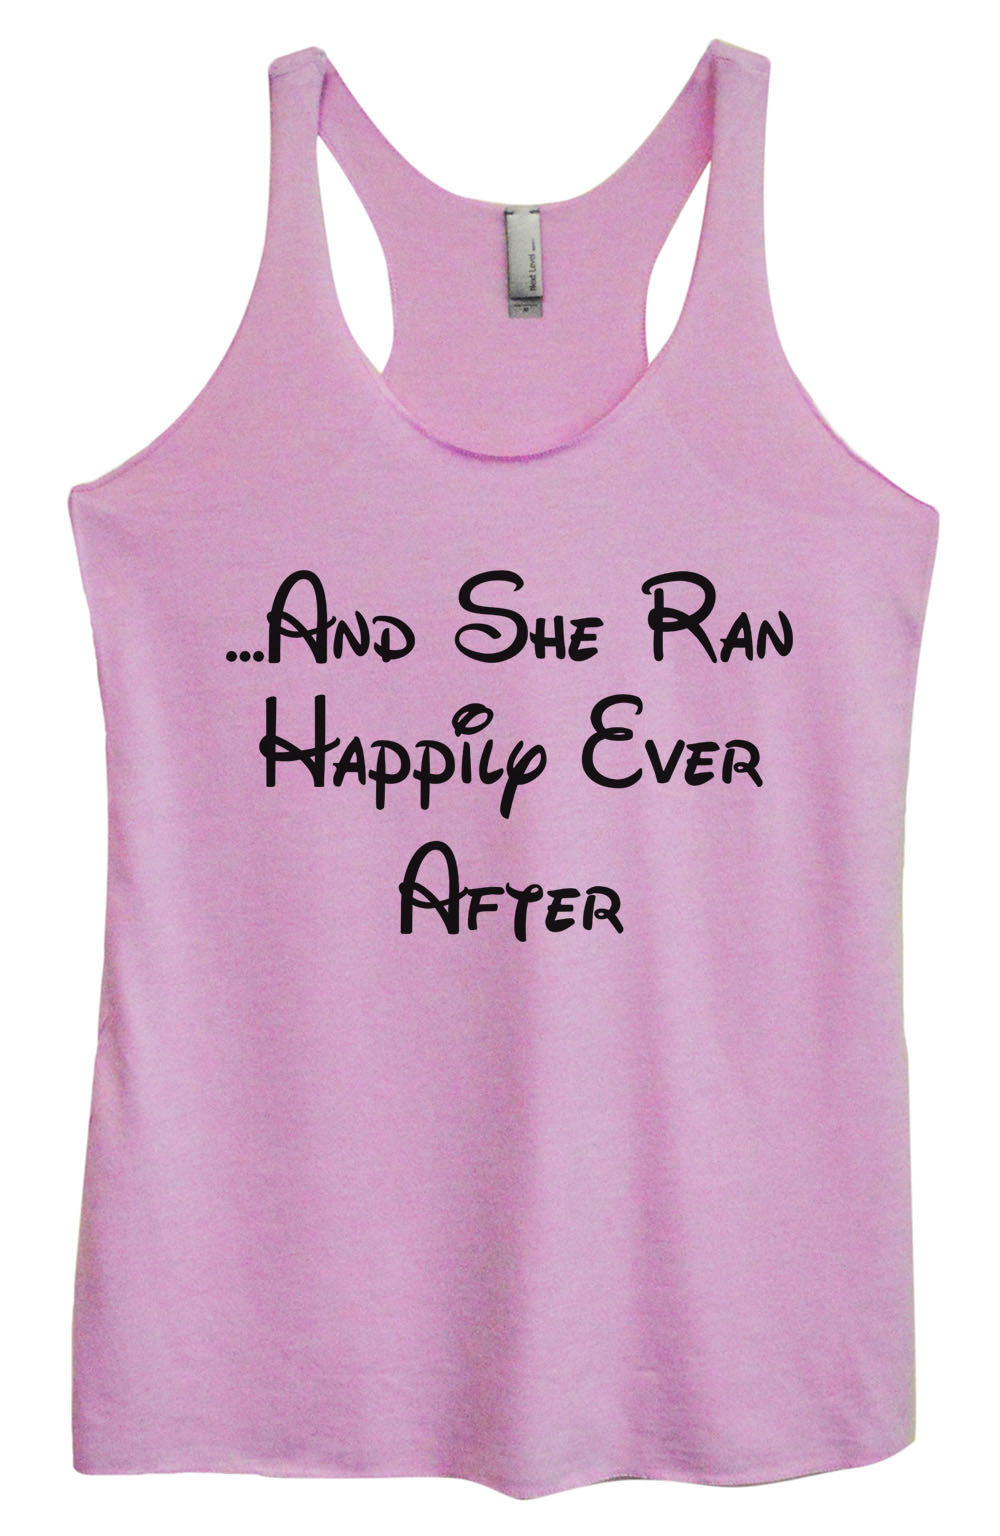 Womens Fashion Triblend Tank Top - ...And She Ran Happily Ever After - Tri-954 - Funny Shirts Tank Tops Burnouts and Triblends  - 1